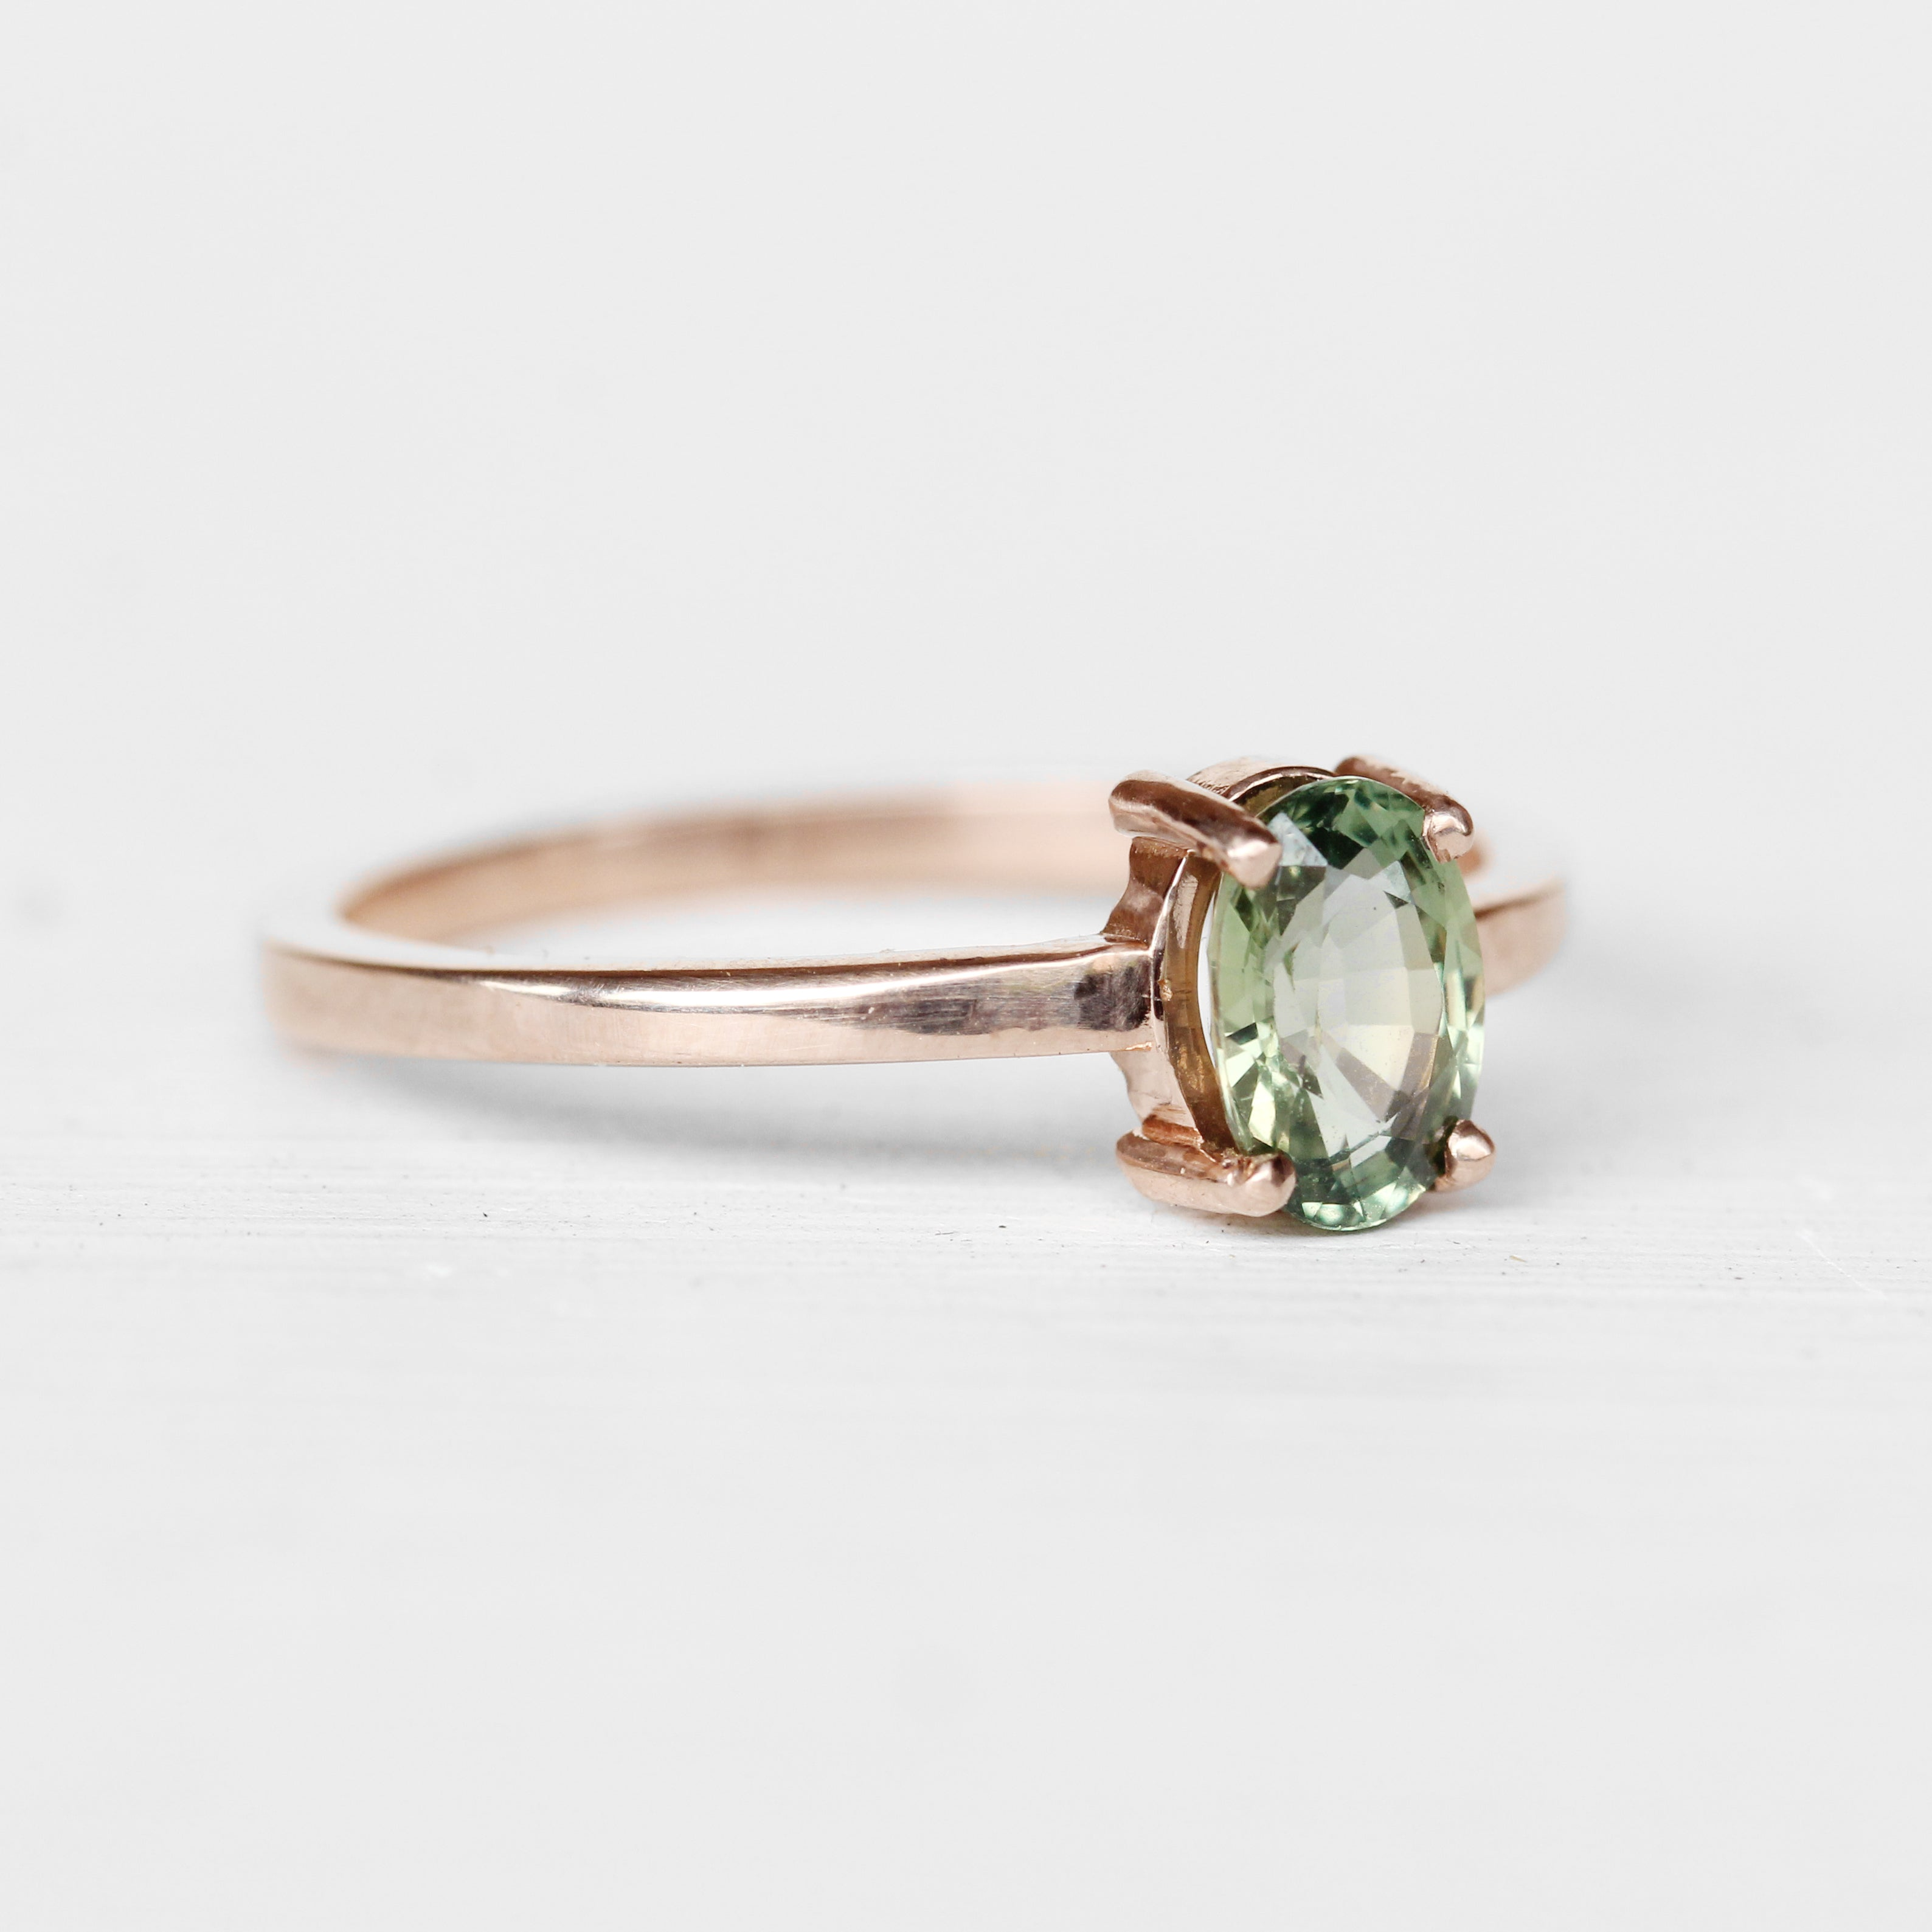 Carly Ring with a Moss Sea Green Blue Sapphire in 10k Rose Gold - Ready to Size and Ship - Celestial Diamonds ® by Midwinter Co.